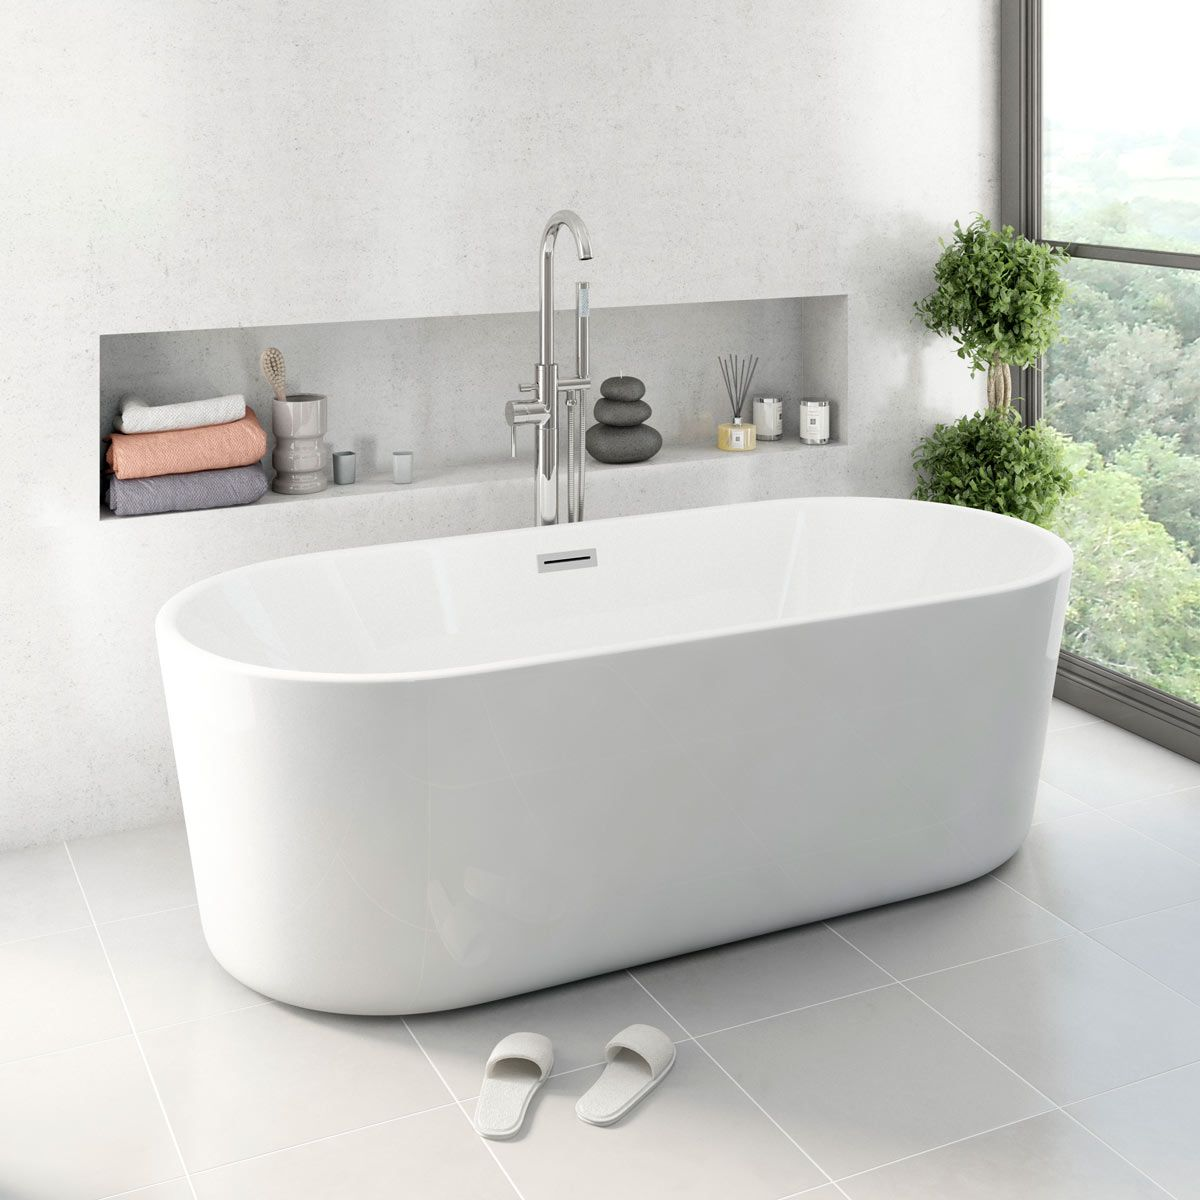 Bathroom Designs With Freestanding Baths mode arte freestanding bath | freestanding bath, ocean and bath